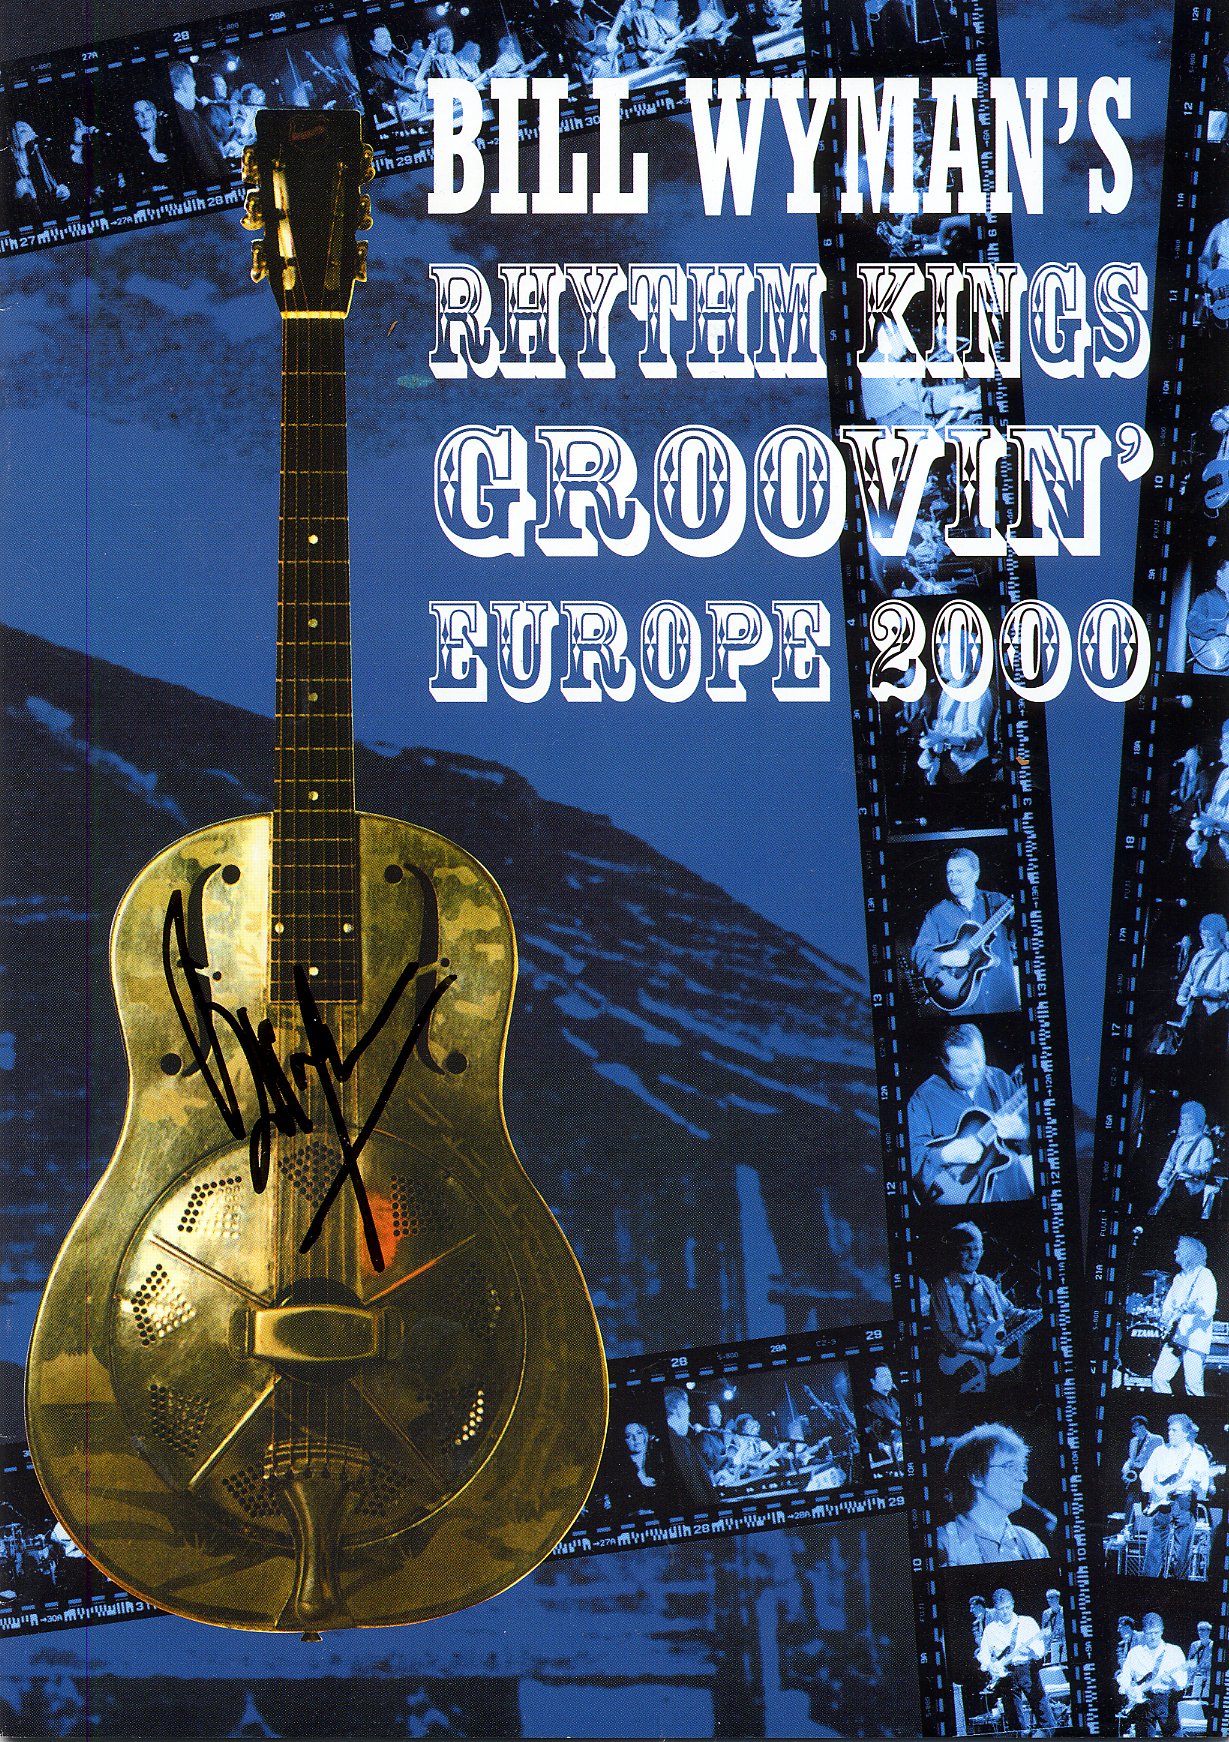 Rhythm Kings, Europe 2000